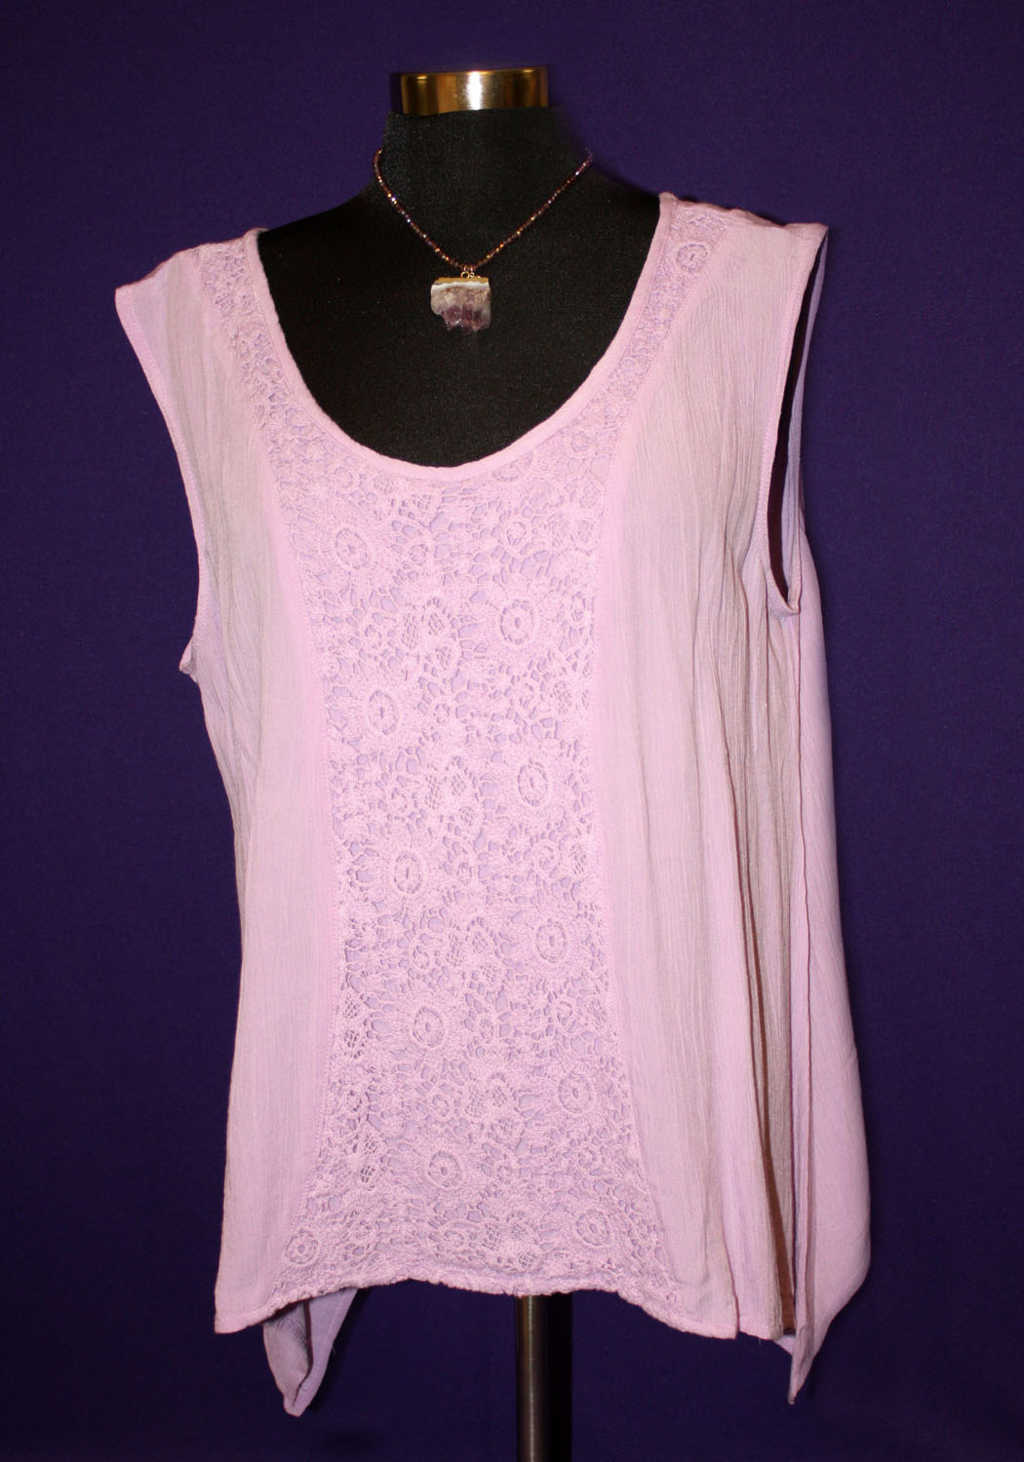 Light purple lace flower tank avaliable at Mon General Hospital Apparel Gift Shop